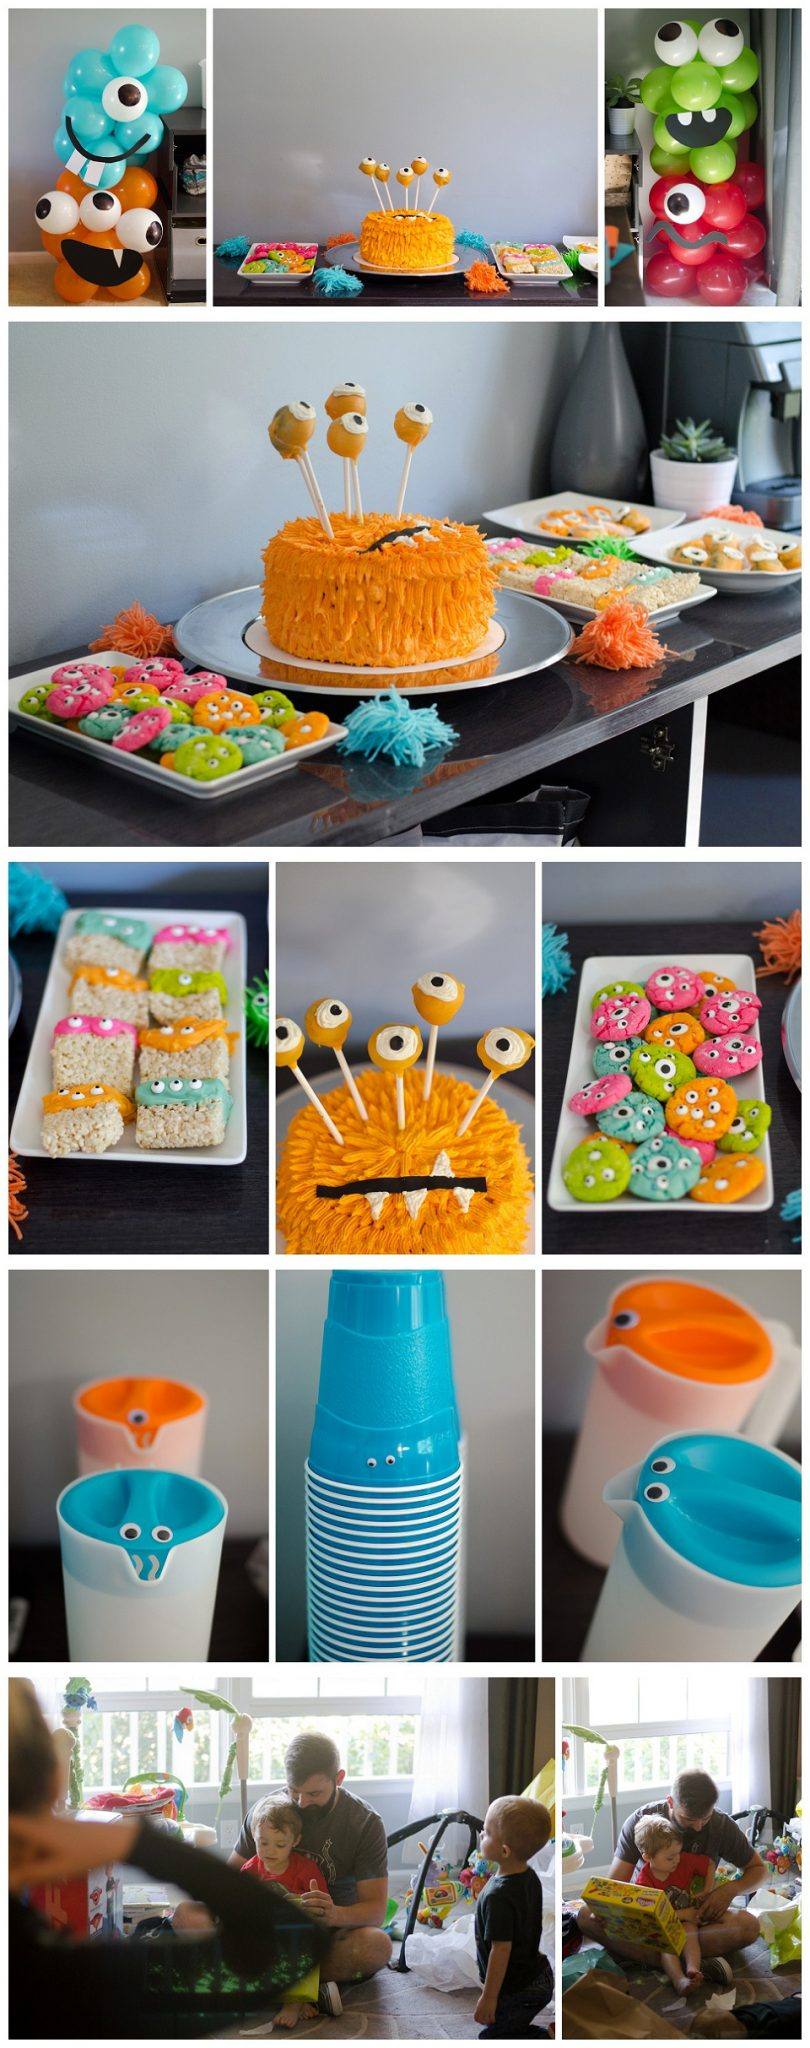 Cute and colorful monster party decorations and food ideas. Orange monster cake with eyeball skewers, eyeball cookies, colorful dipped rice krispy treats with eyeball candy, googly eyes on drinks and monster balloon towers/columns